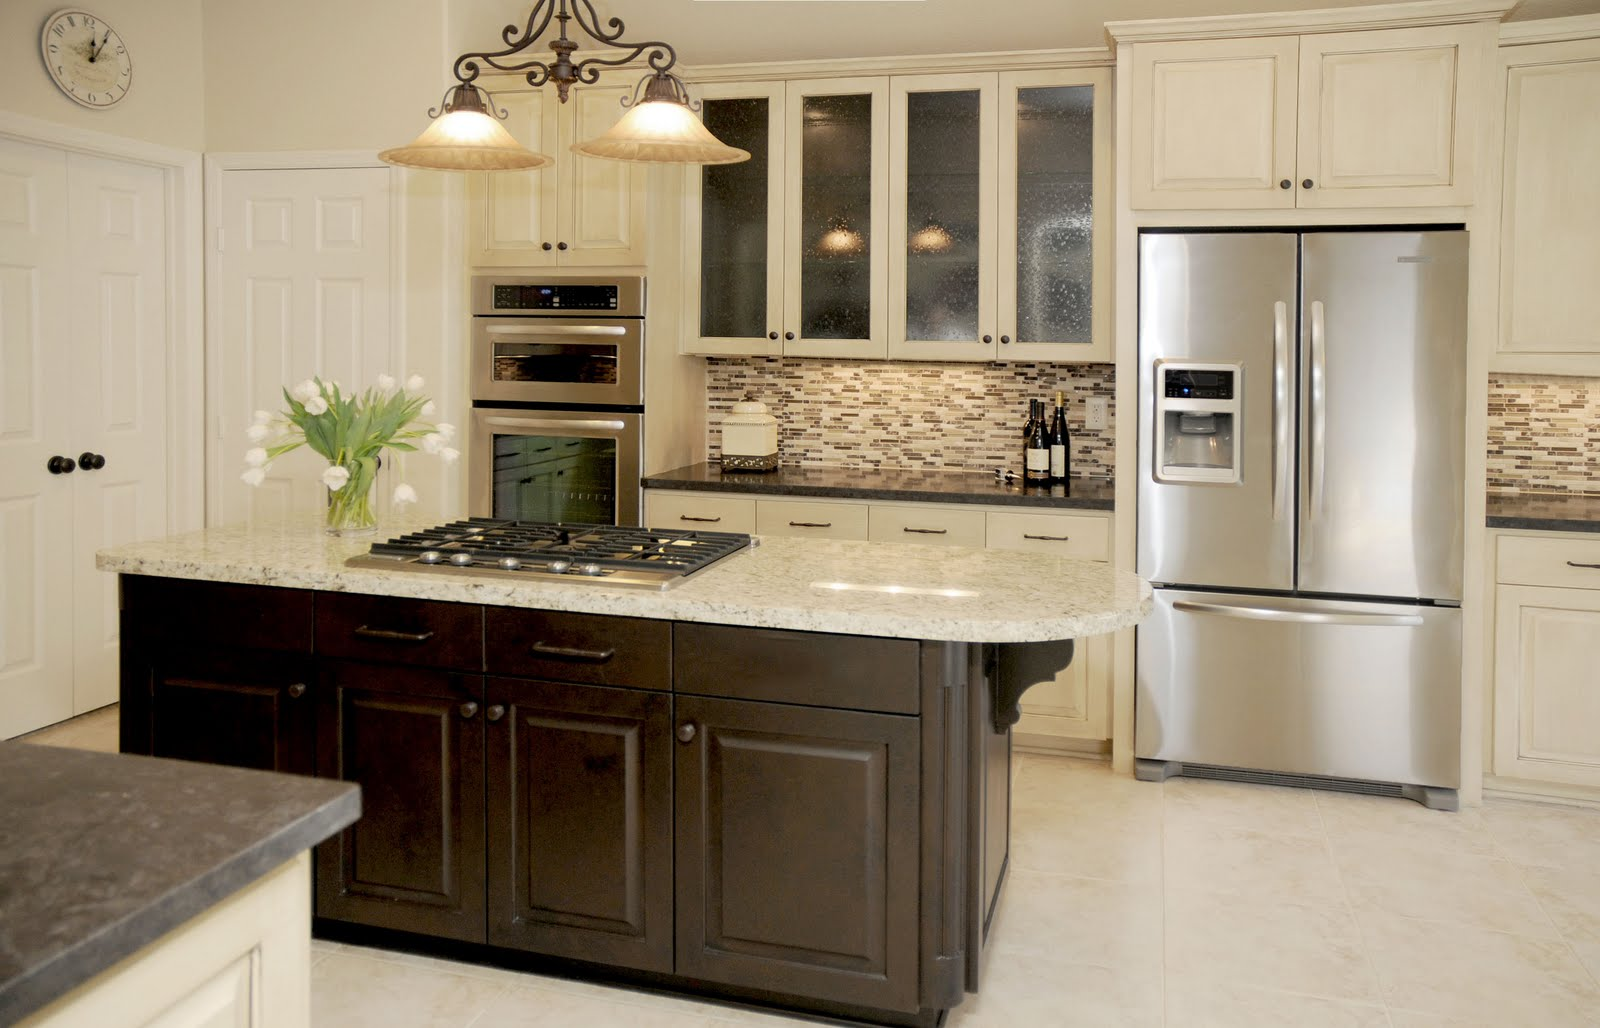 Galley kitchen remodels before and after kitchen design for Small kitchen remodel